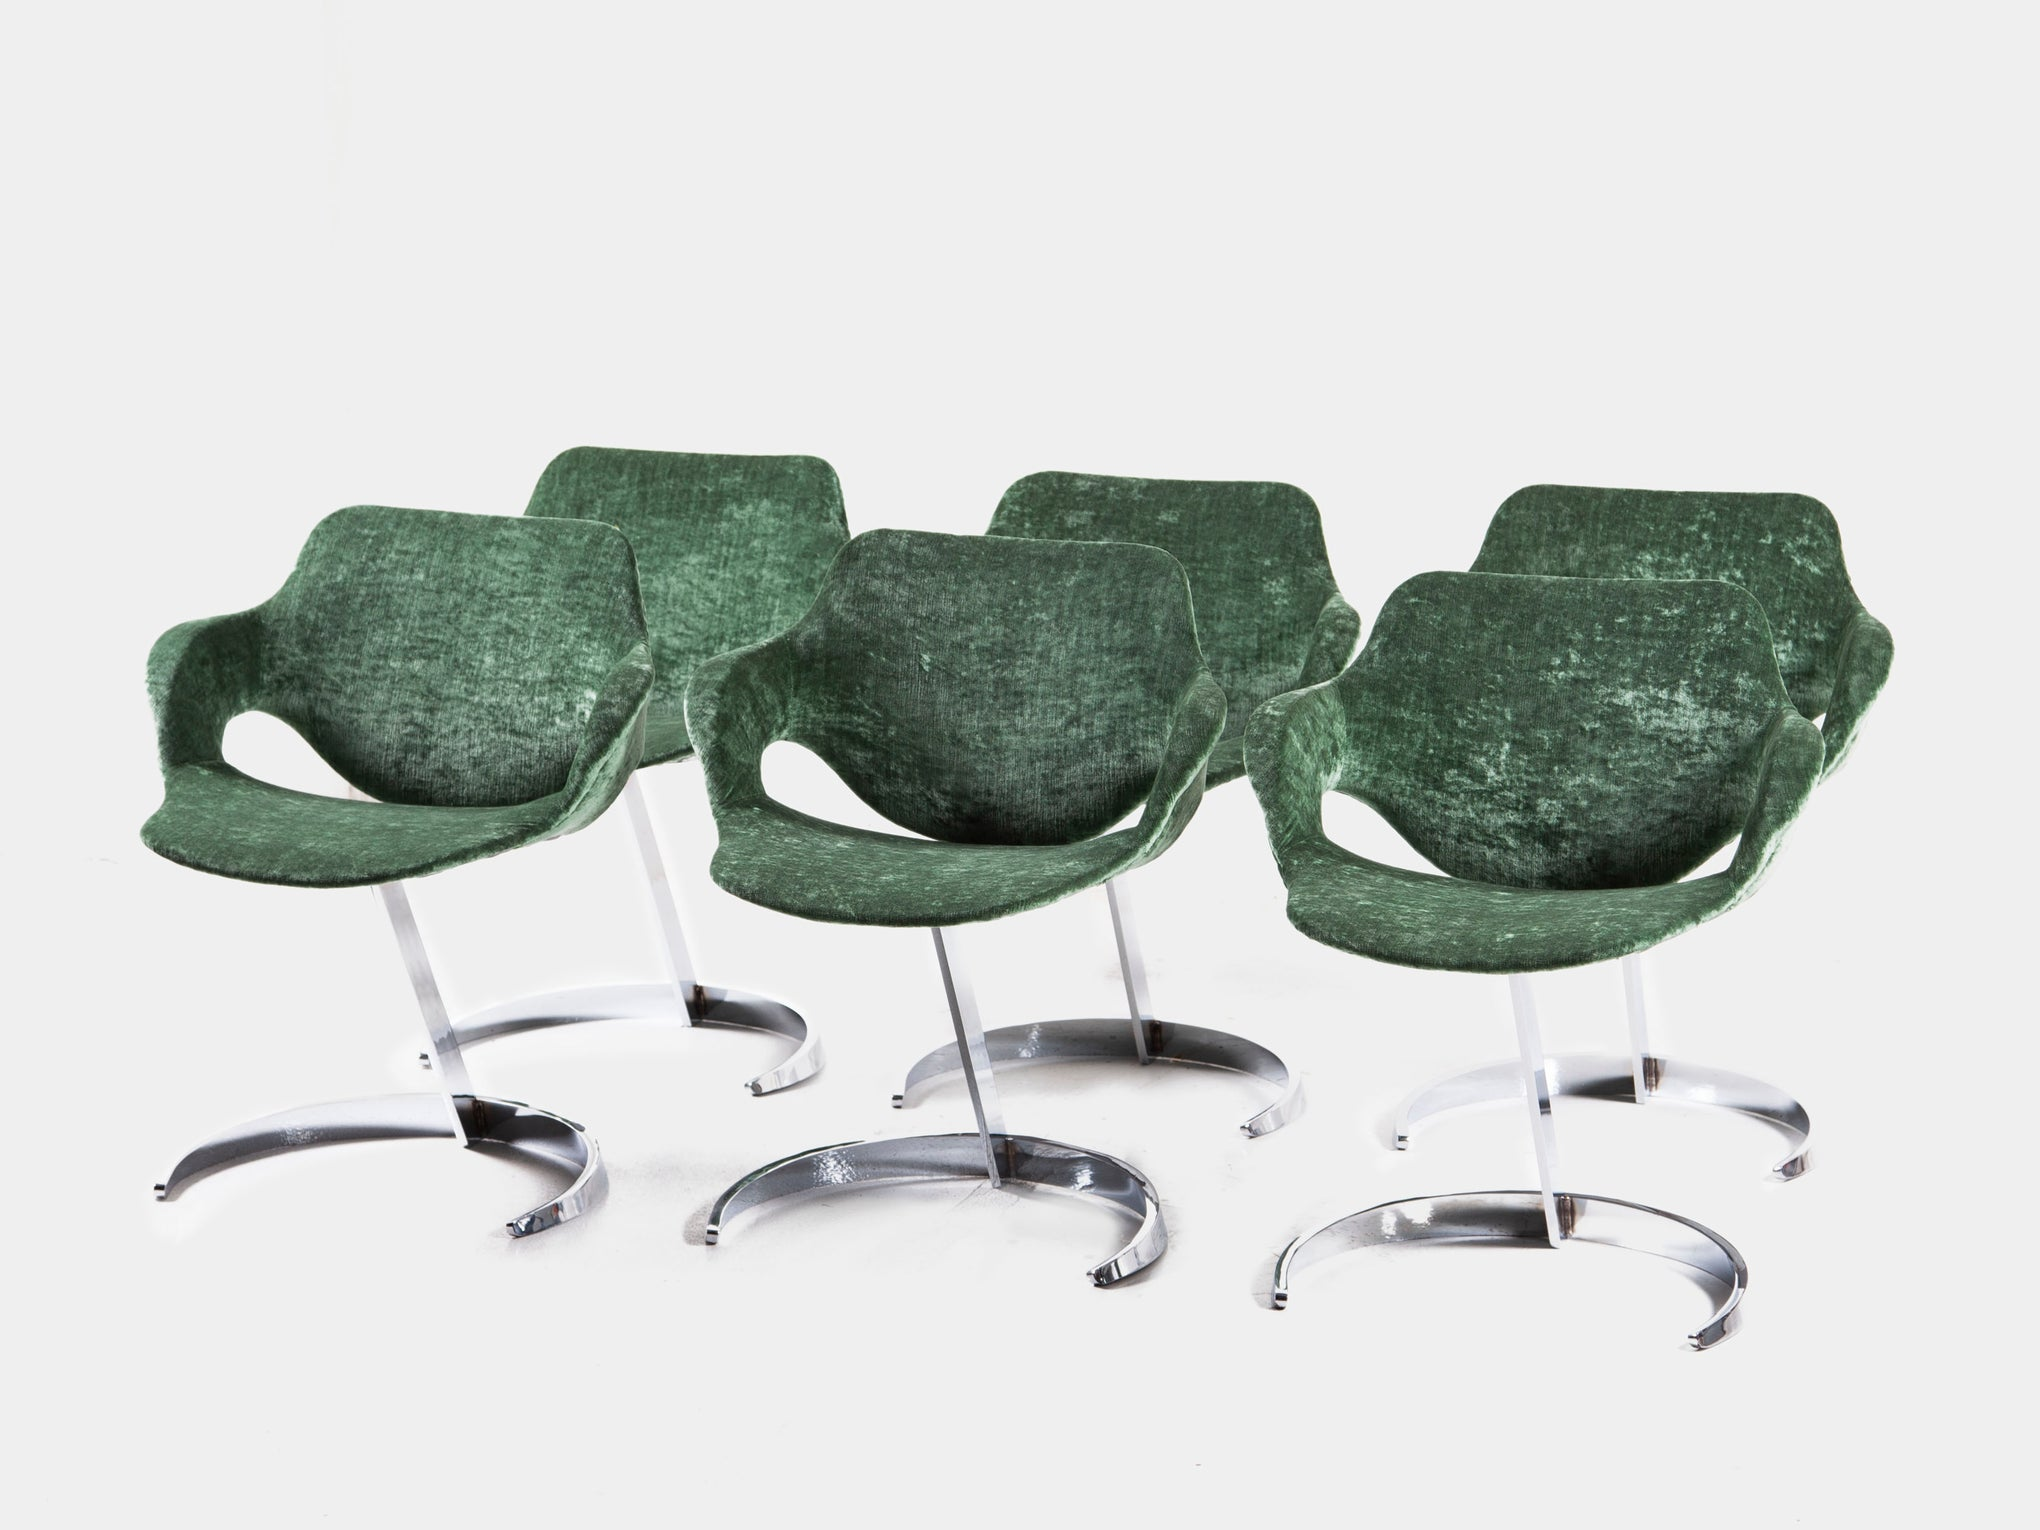 Lovely green Scimitar dining chairs by Boris Tabacoff